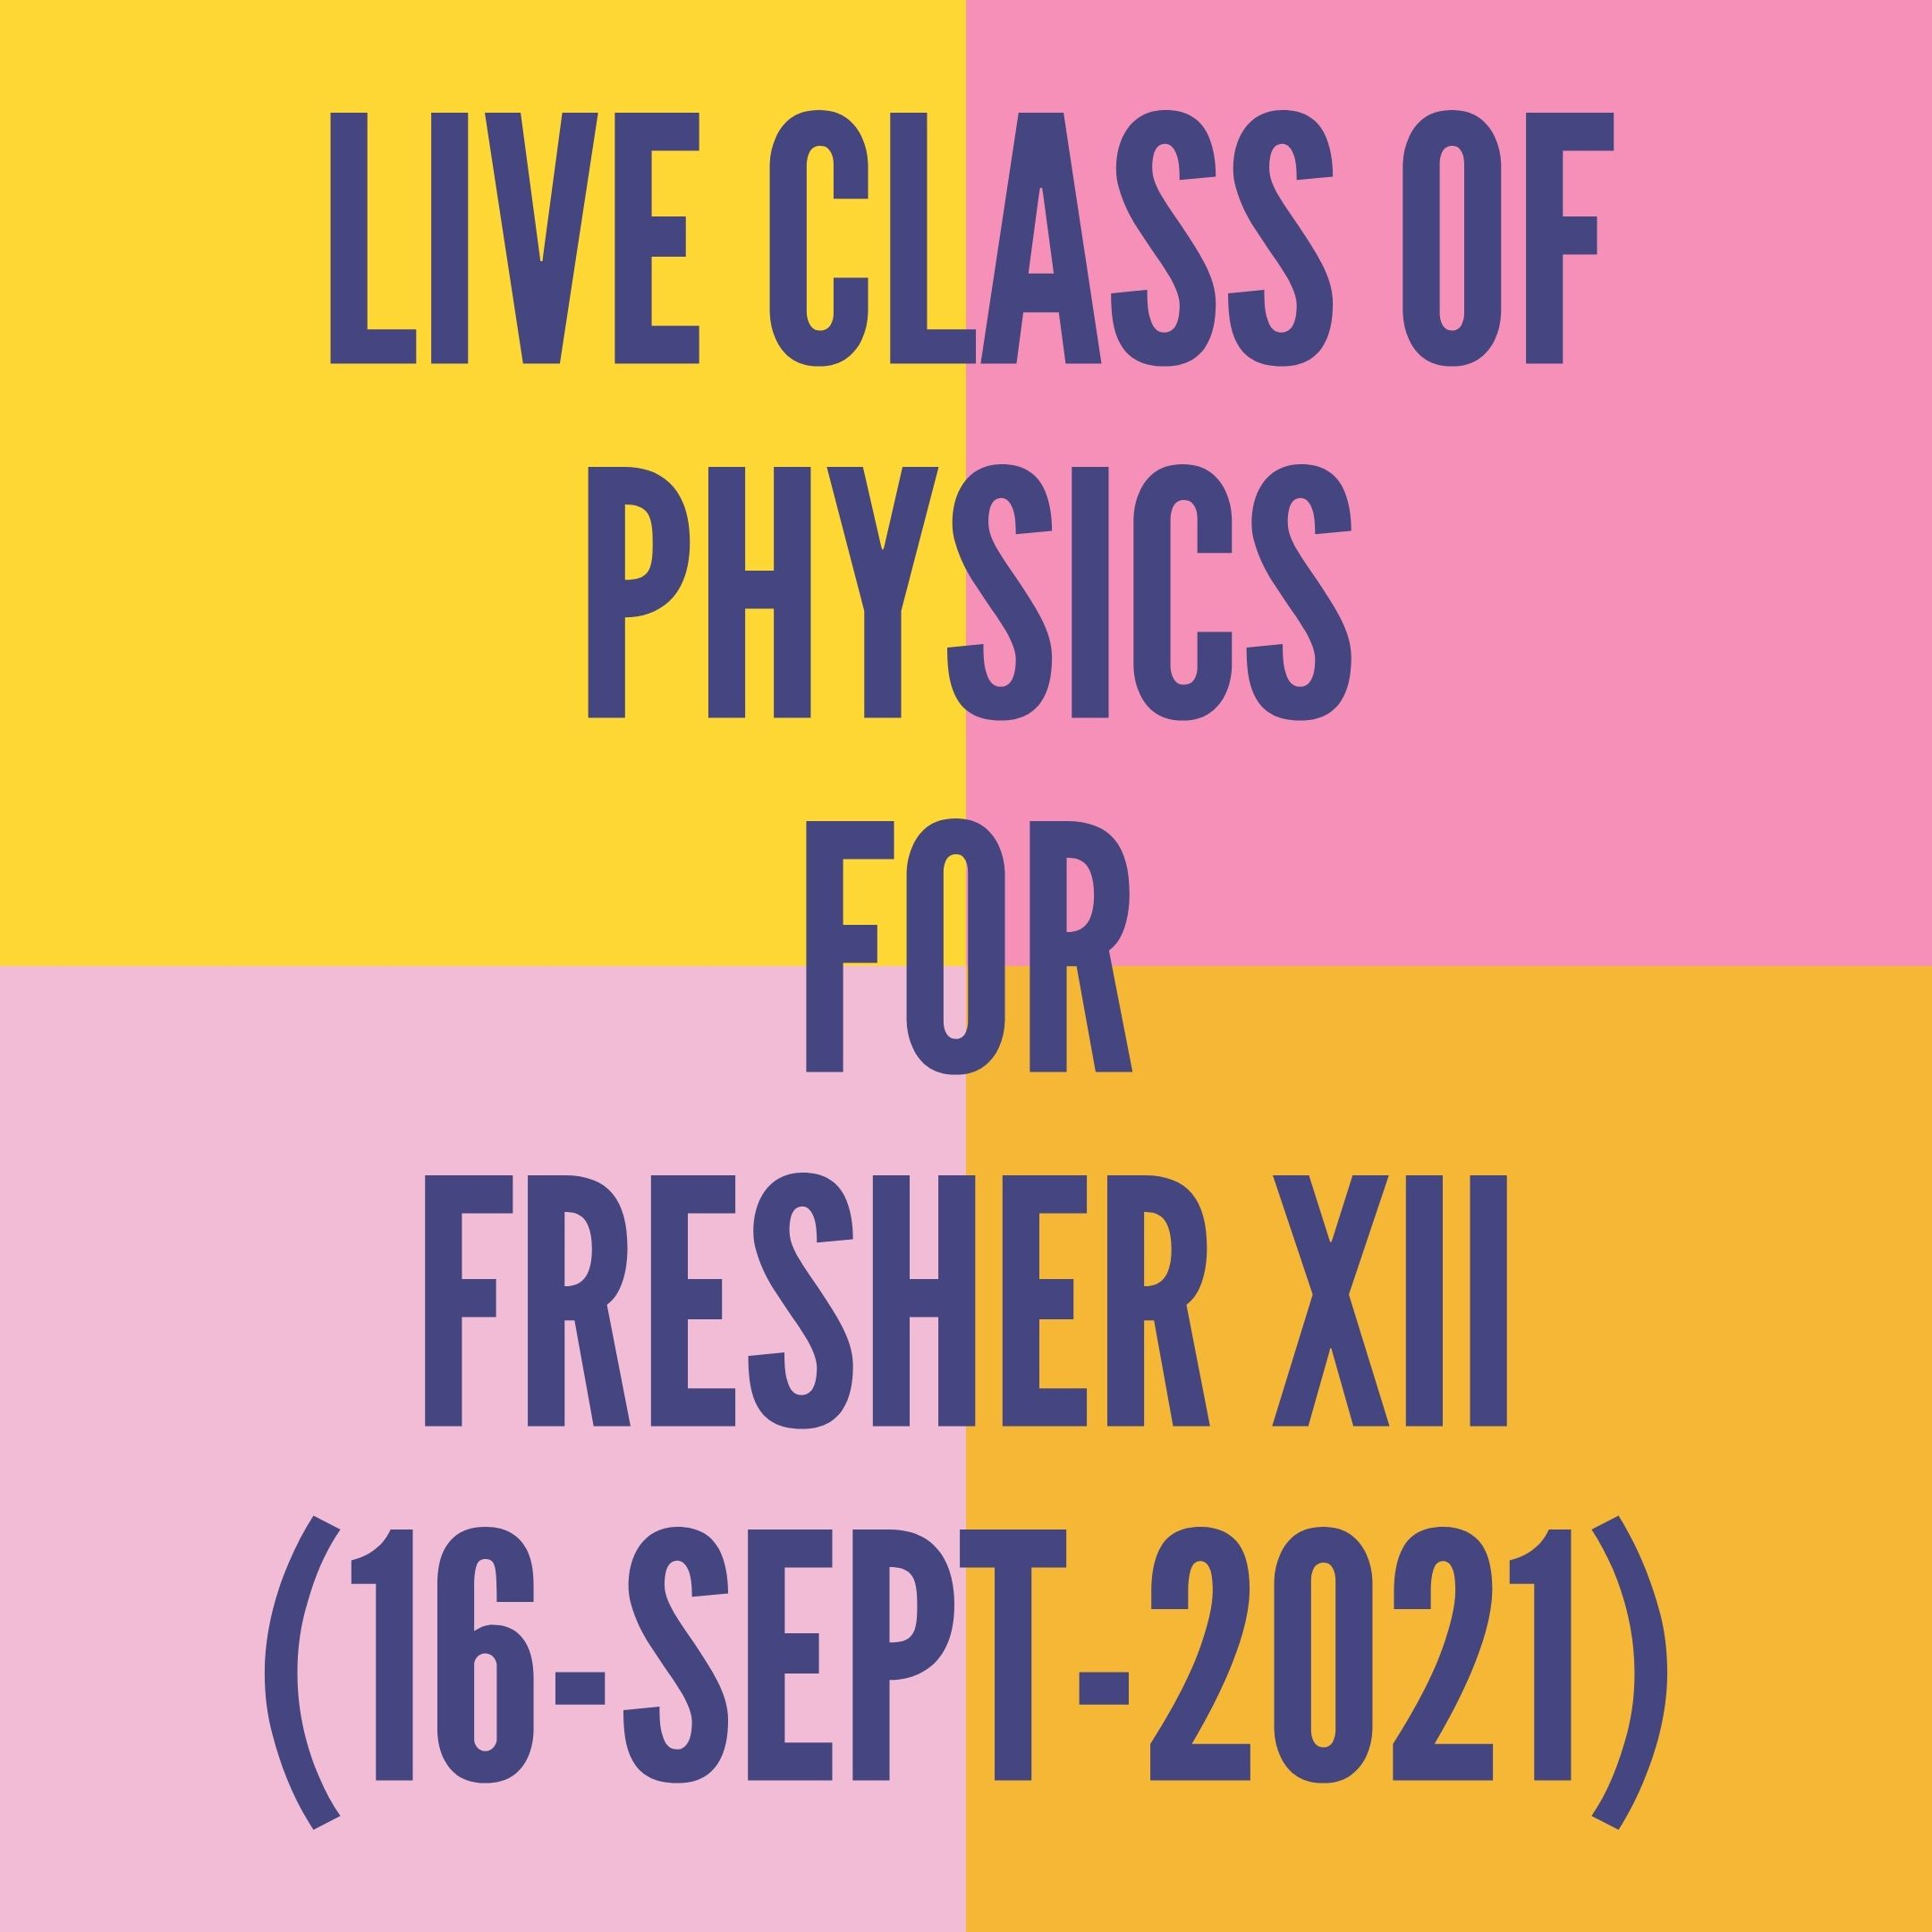 LIVE CLASS OF PHYSICS FOR FRESHER XII (16-SEPT-2021) PERMANENT MAGNETISM